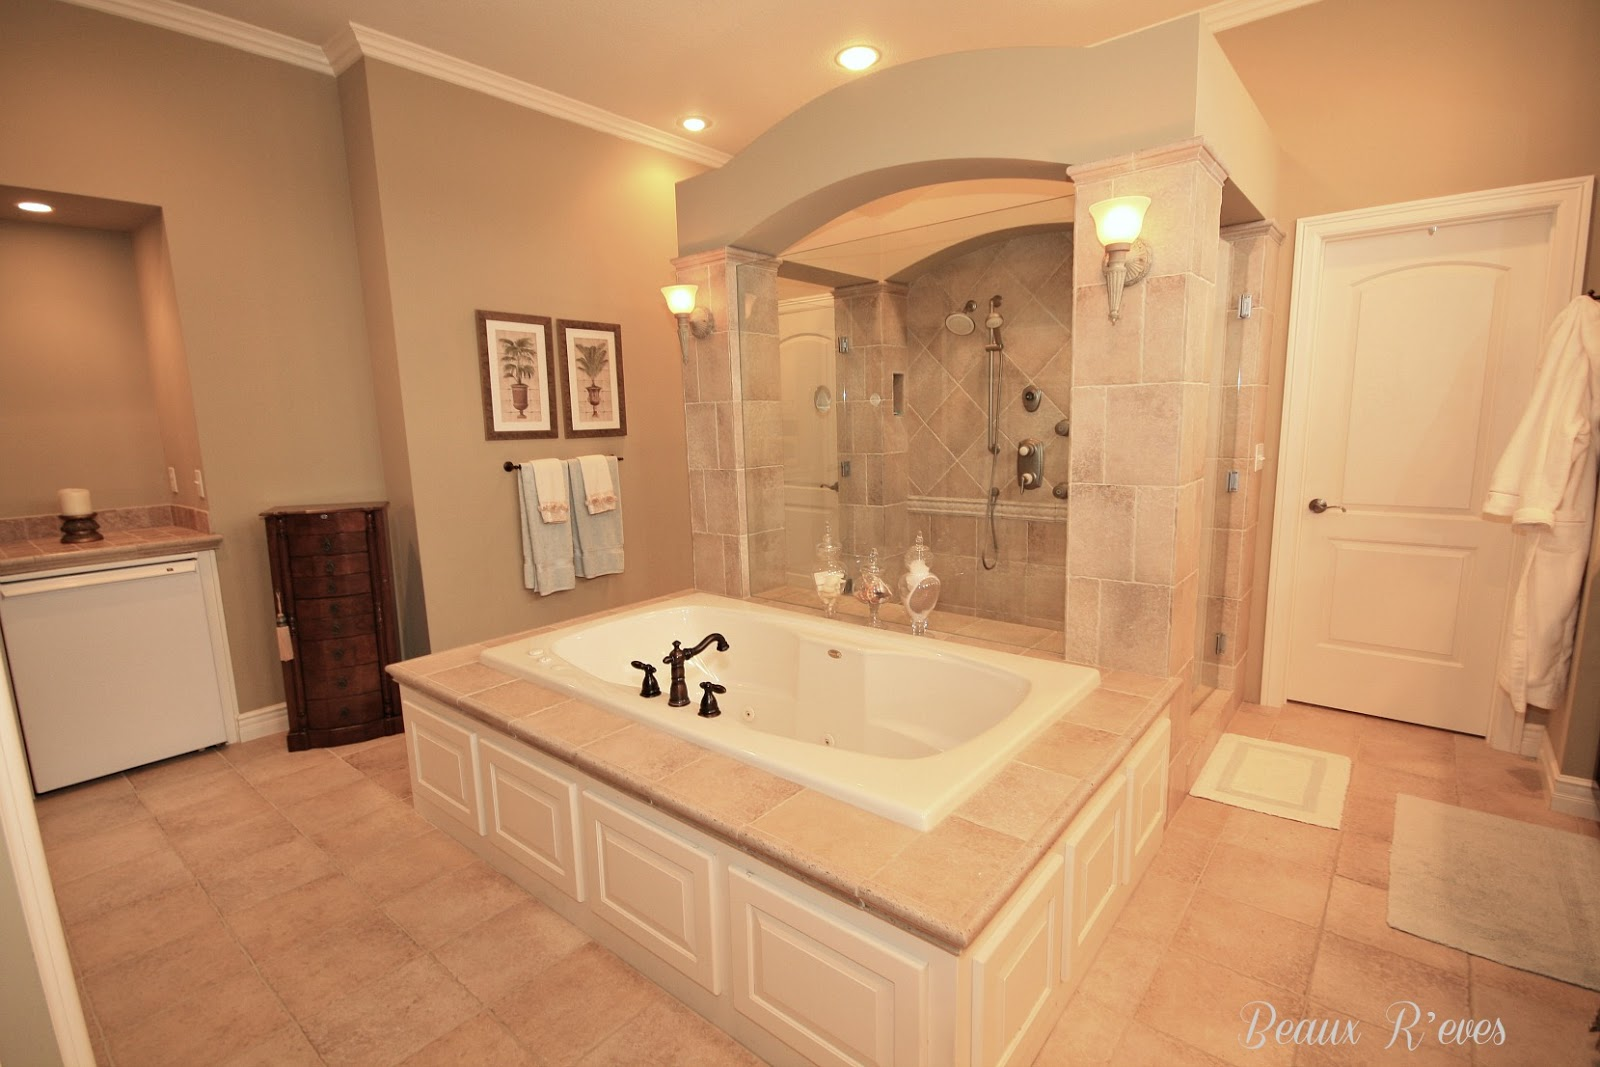 Beaux r 39 eves february 2013 for Bathrooms r us clayton